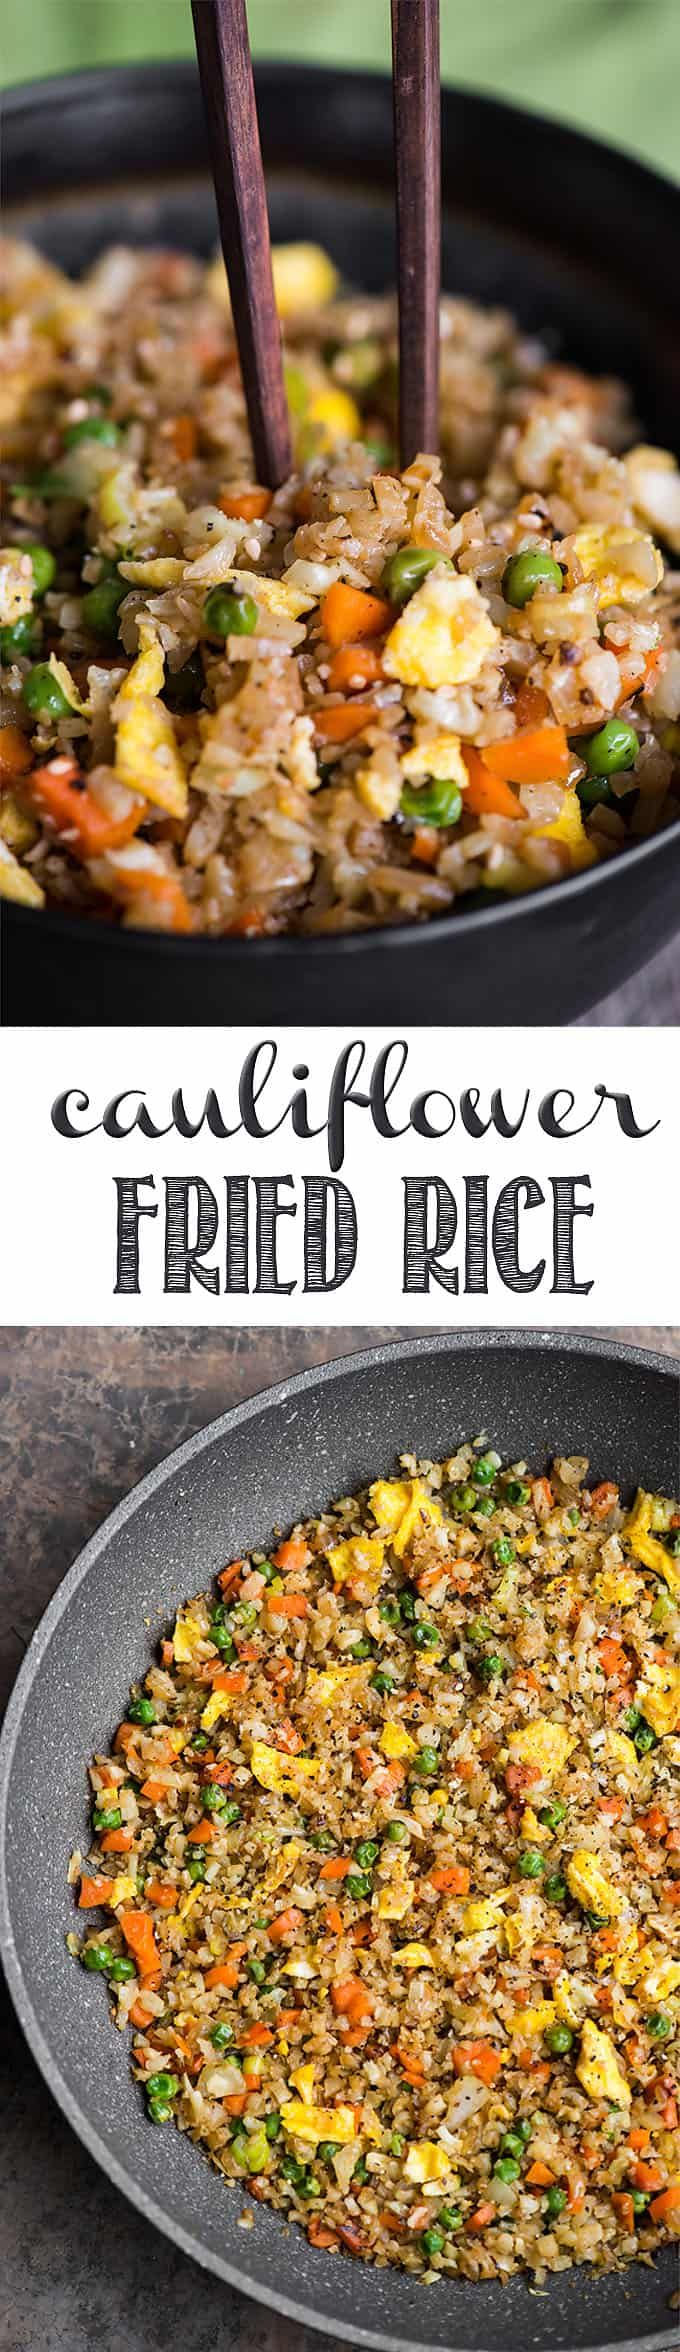 Cauliflower Fried Rice is an easy to make a tasty, low carb meal packed with vitamins and flavor! This